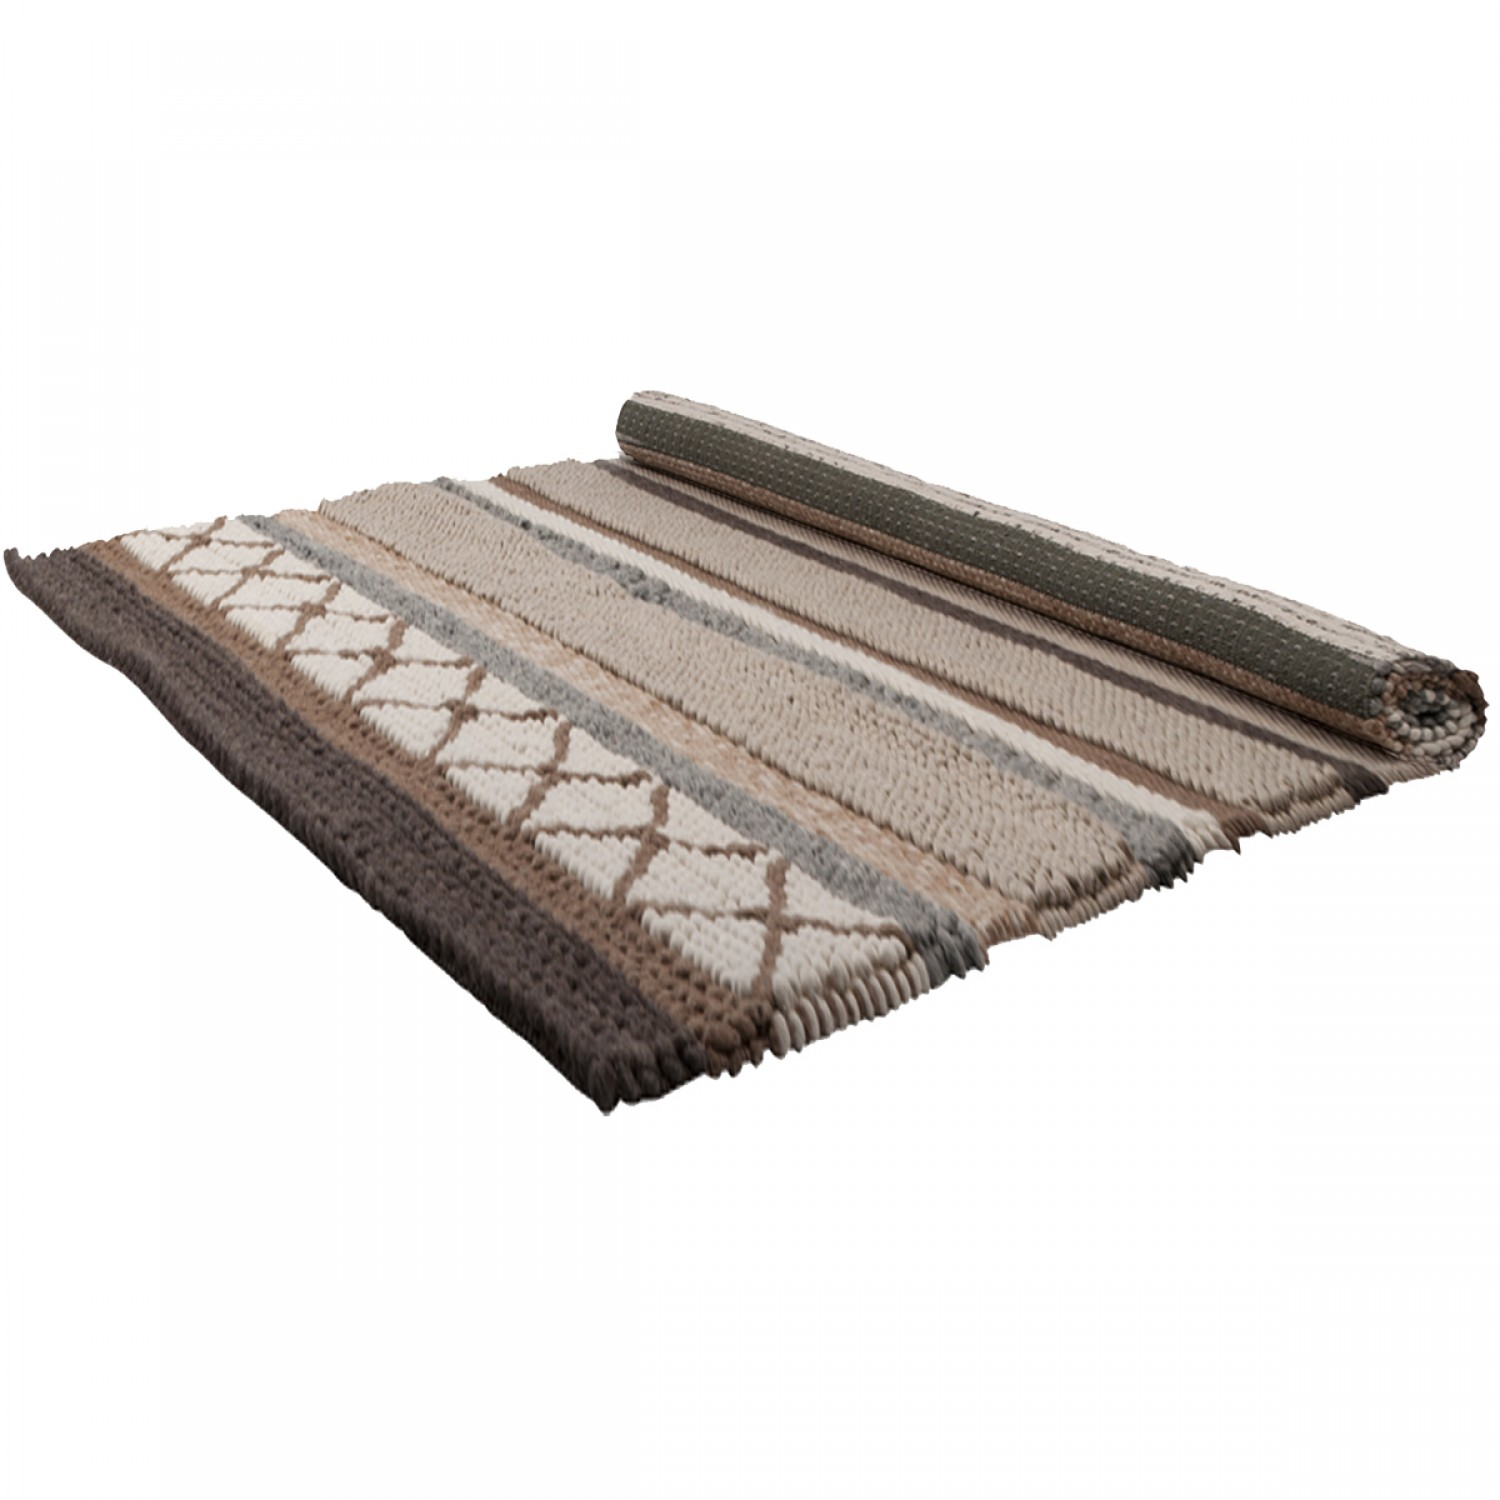 tapis andrea marron et beige 200x300 cm koya design. Black Bedroom Furniture Sets. Home Design Ideas